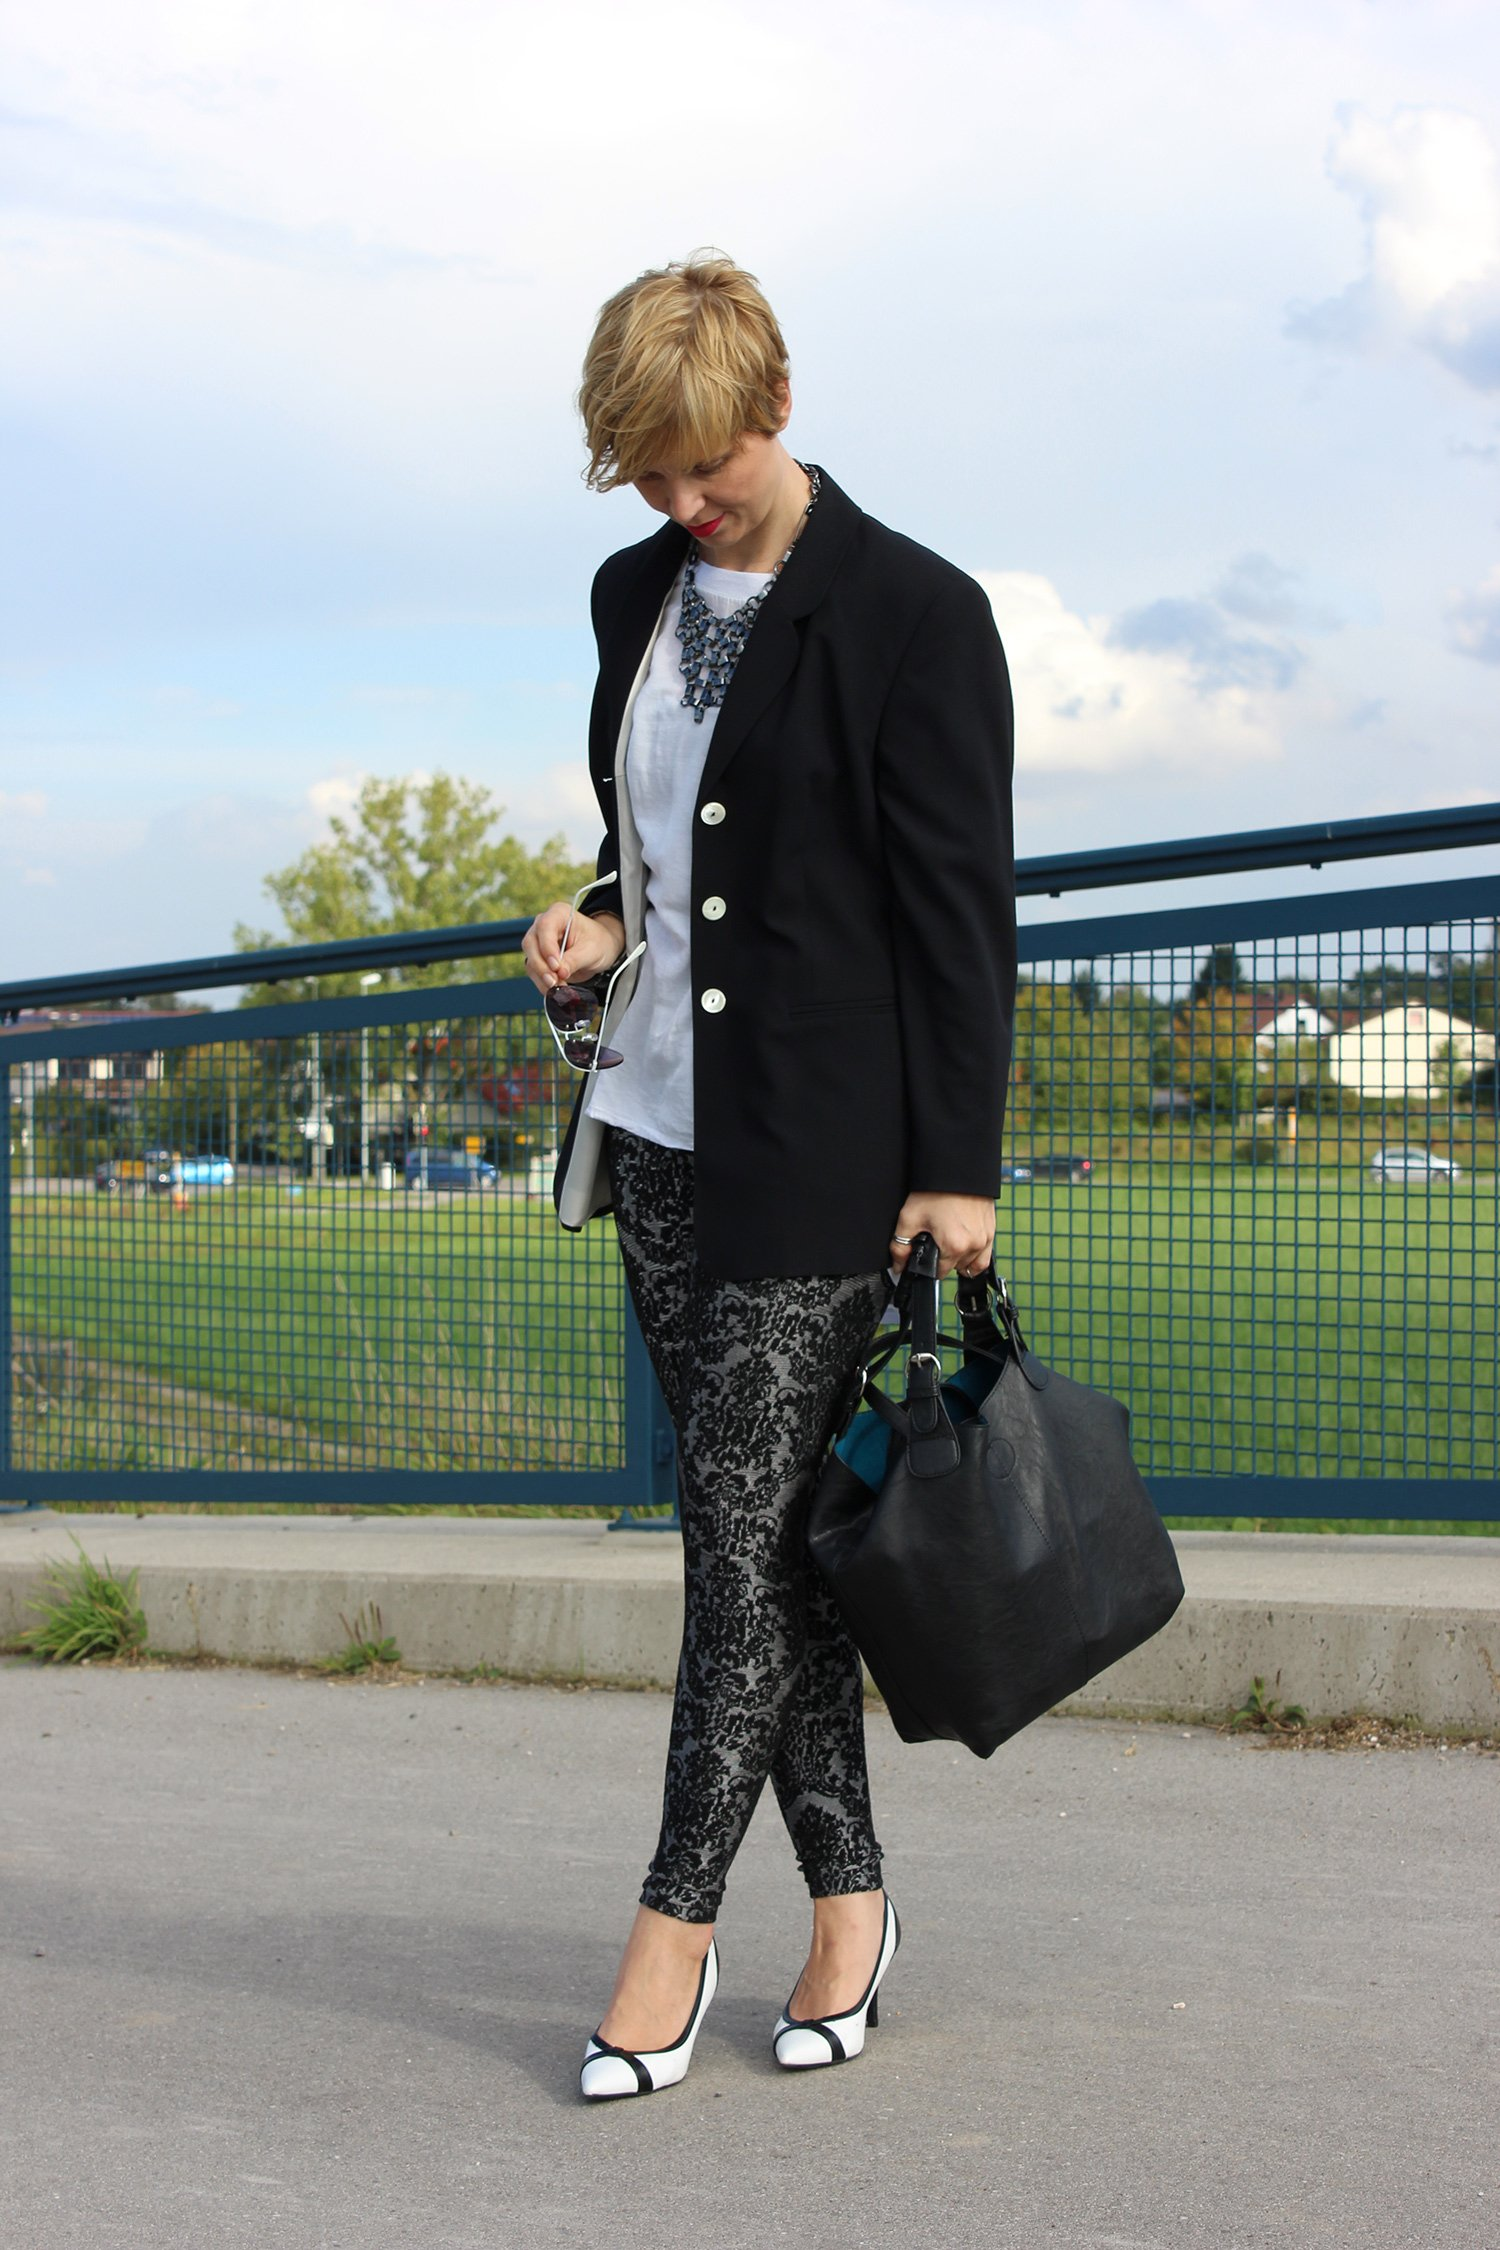 IMG_1554a_Only_blackandwhite_Legging_pumps_Deichmann